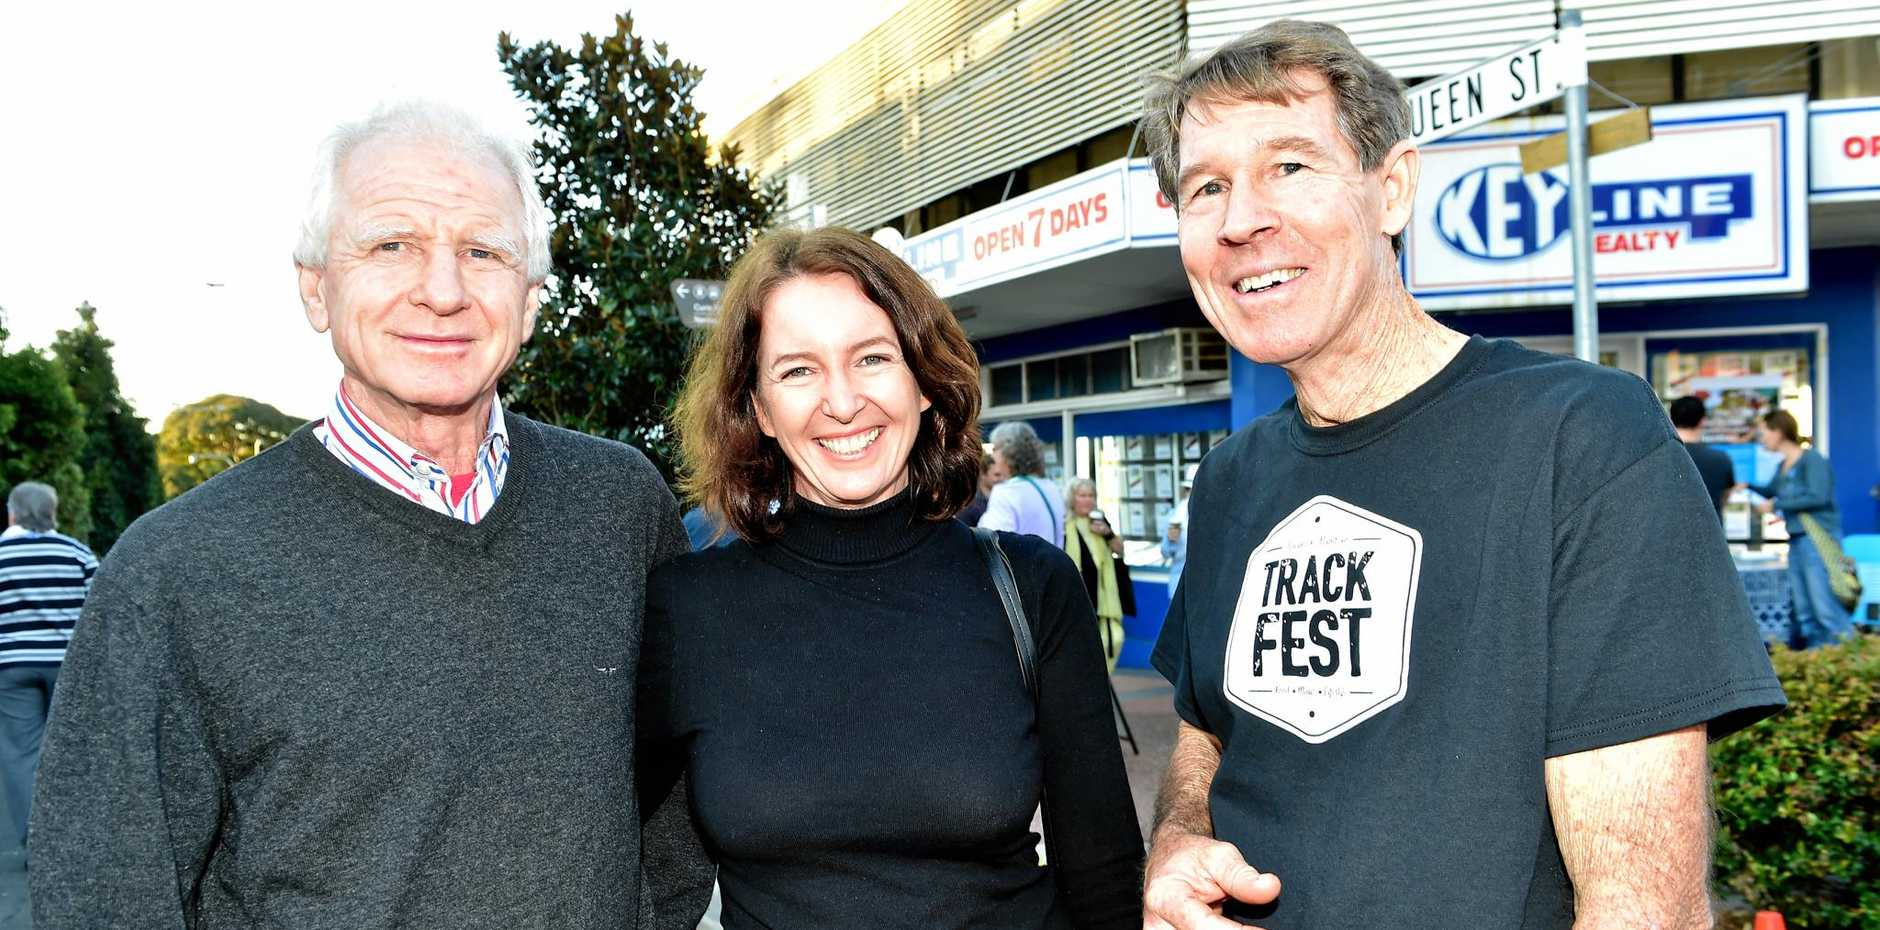 PIECES OF HISTORY: Michael Foley (left), with Beth Jackson and Peter Clarke, has left a lasting legacy through his public art and passion to retain Nambour's sugar heritage.